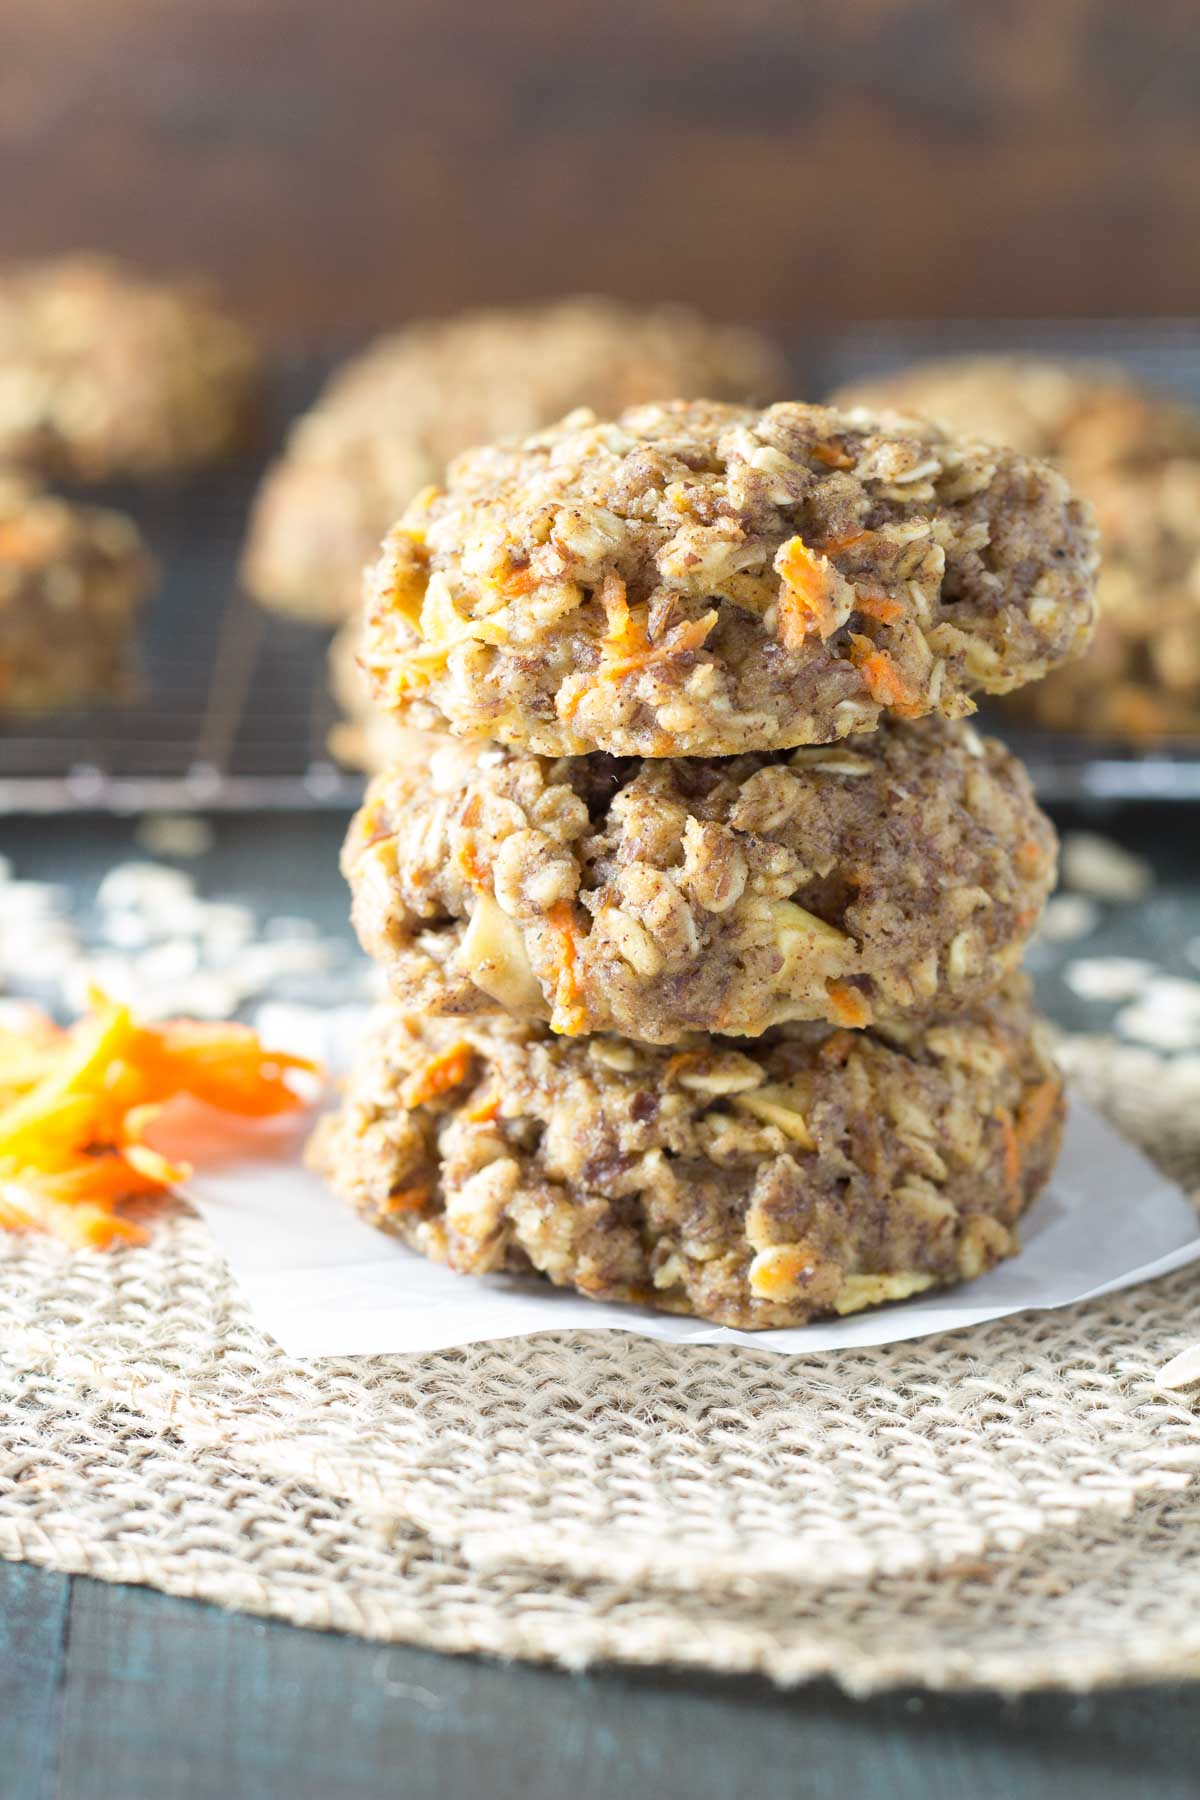 Thick, chewy, and full of fresh carrot and apple, these Carrot Cake Breakfast Cookies are a healthy make ahead breakfast. Whole grain and refined sugar free. Gluten free option.